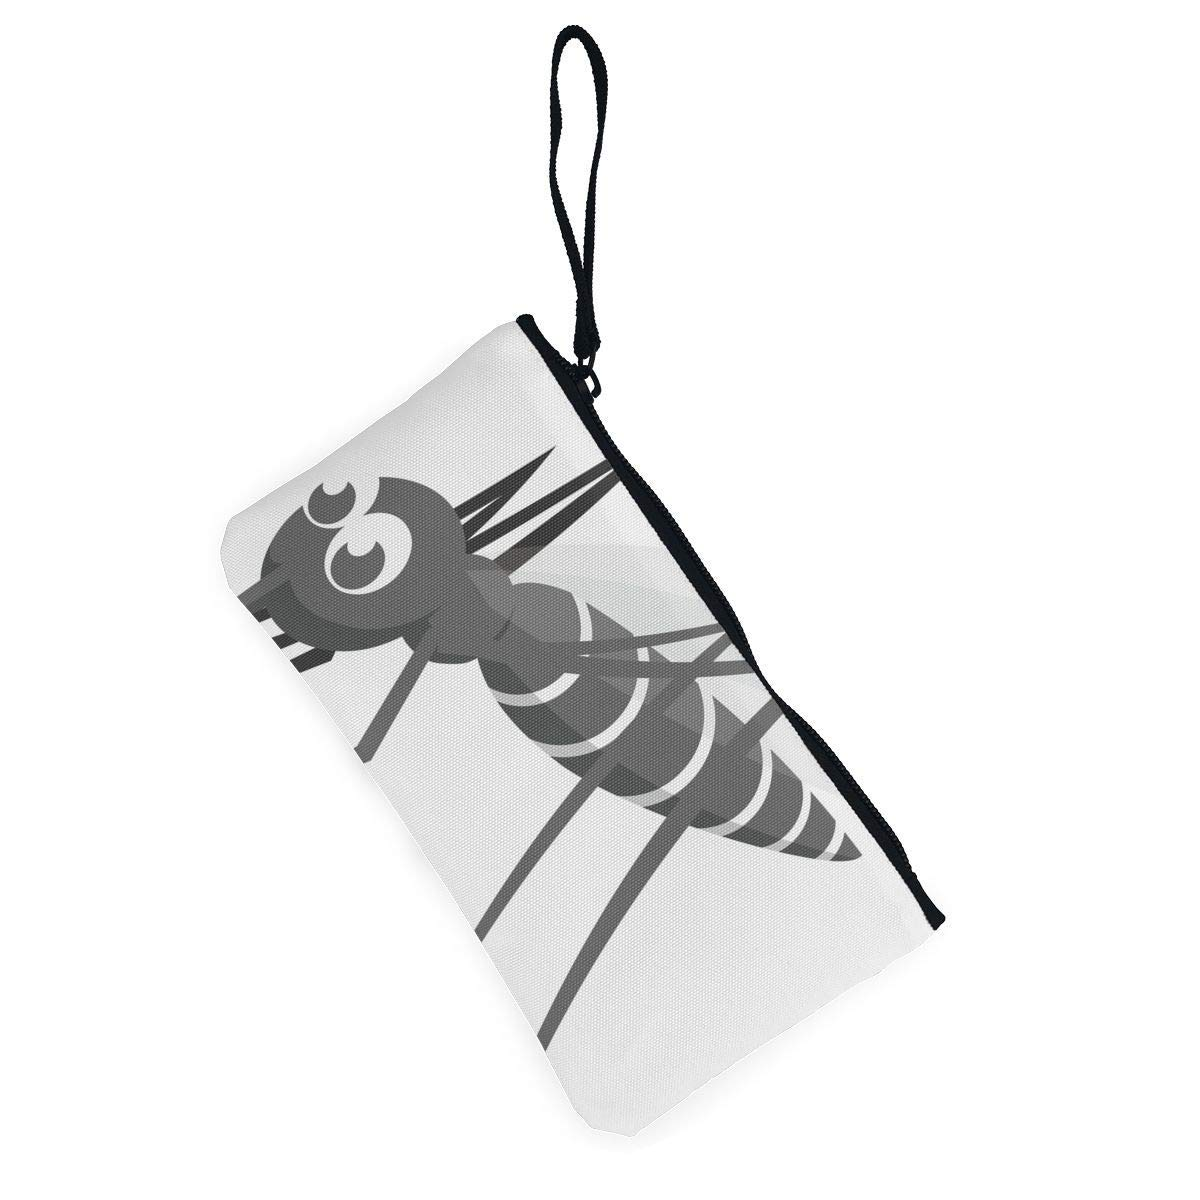 Coin Purse A Mosquito On White Background Ladies Zipper Canvas Wallet ChangeMarvellous Bag